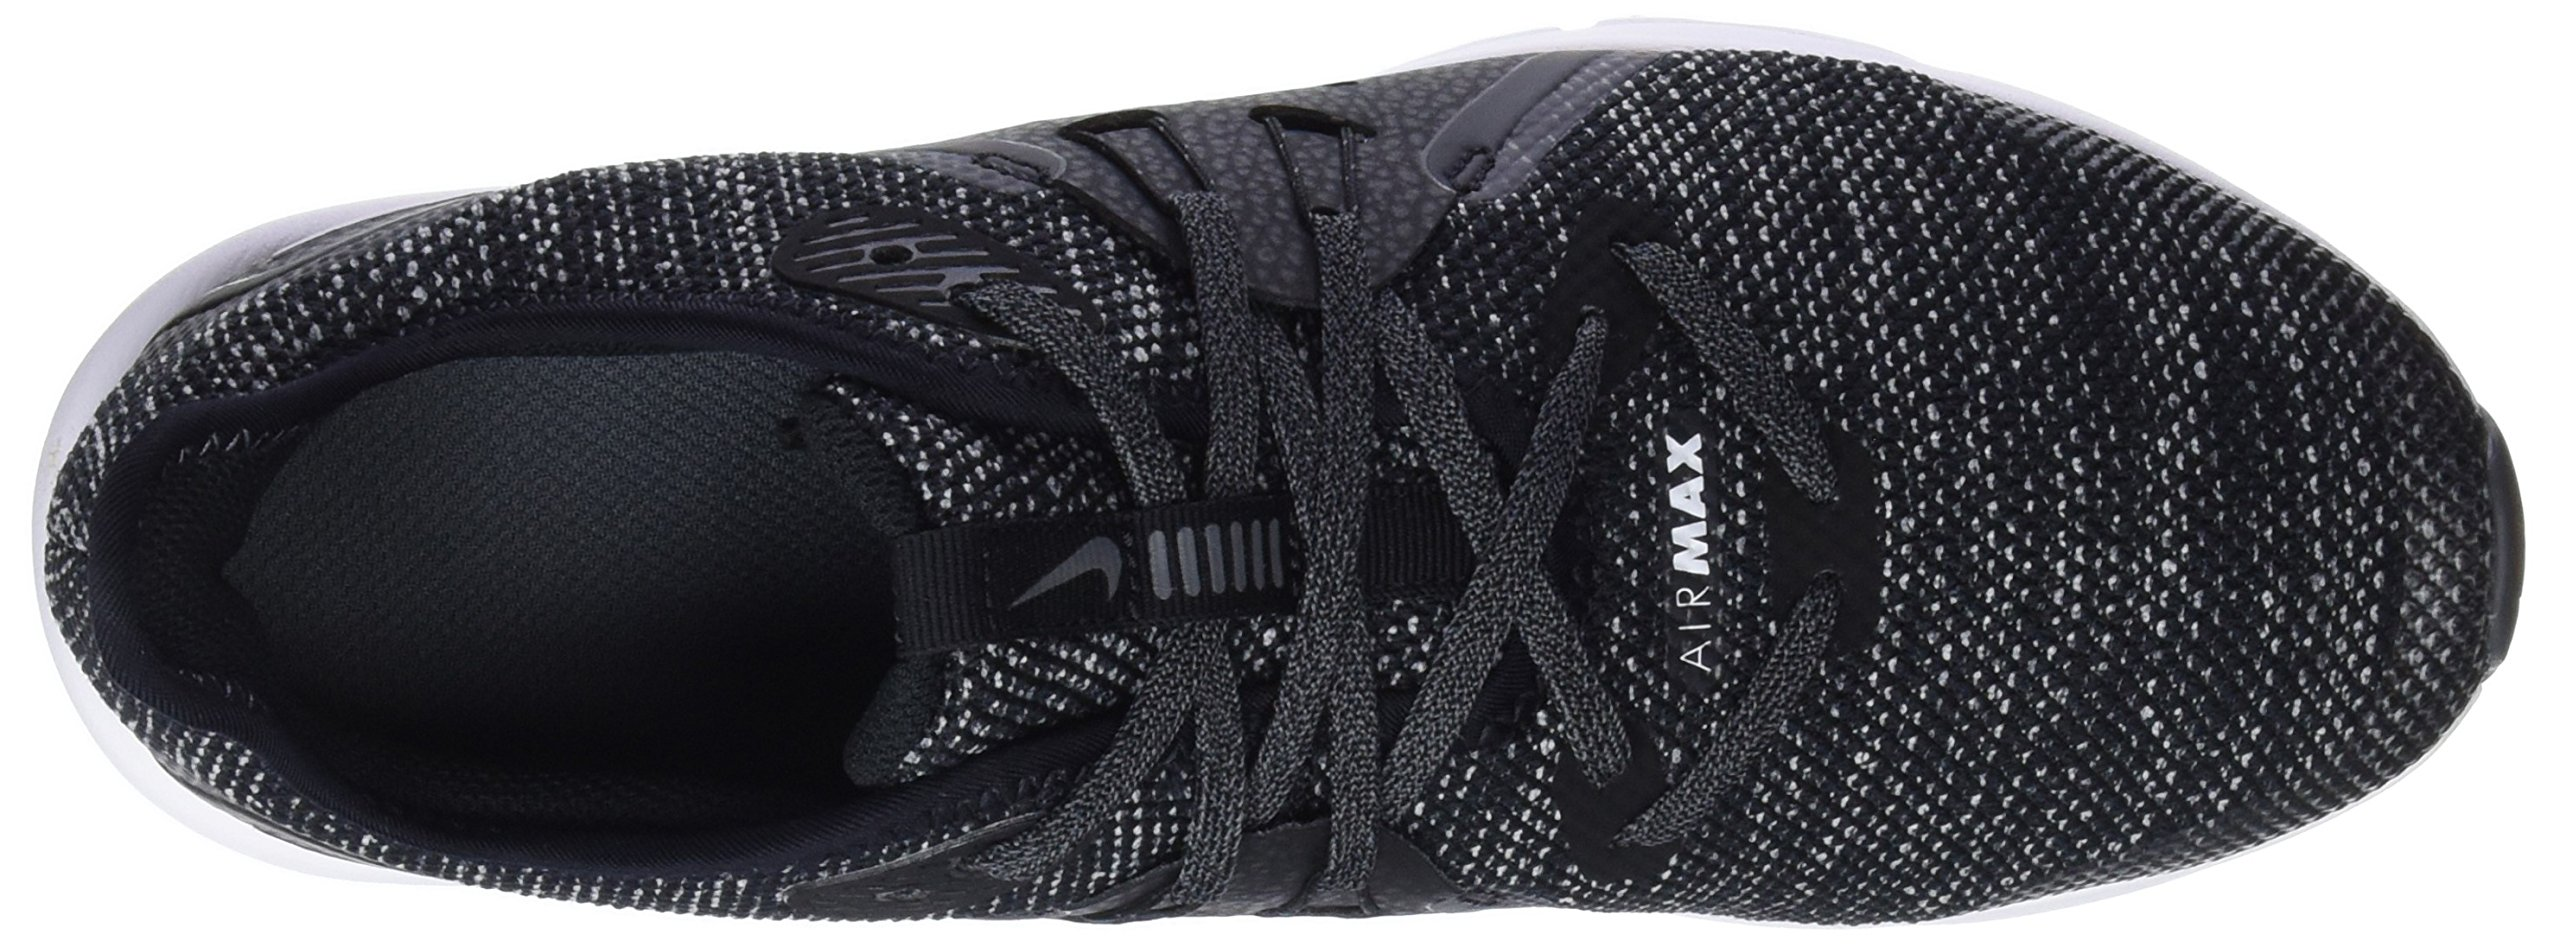 Nike Boy's Air Max Sequent 3 Running Shoe Black/White/Dark Grey Size 3.5 M US by Nike (Image #7)